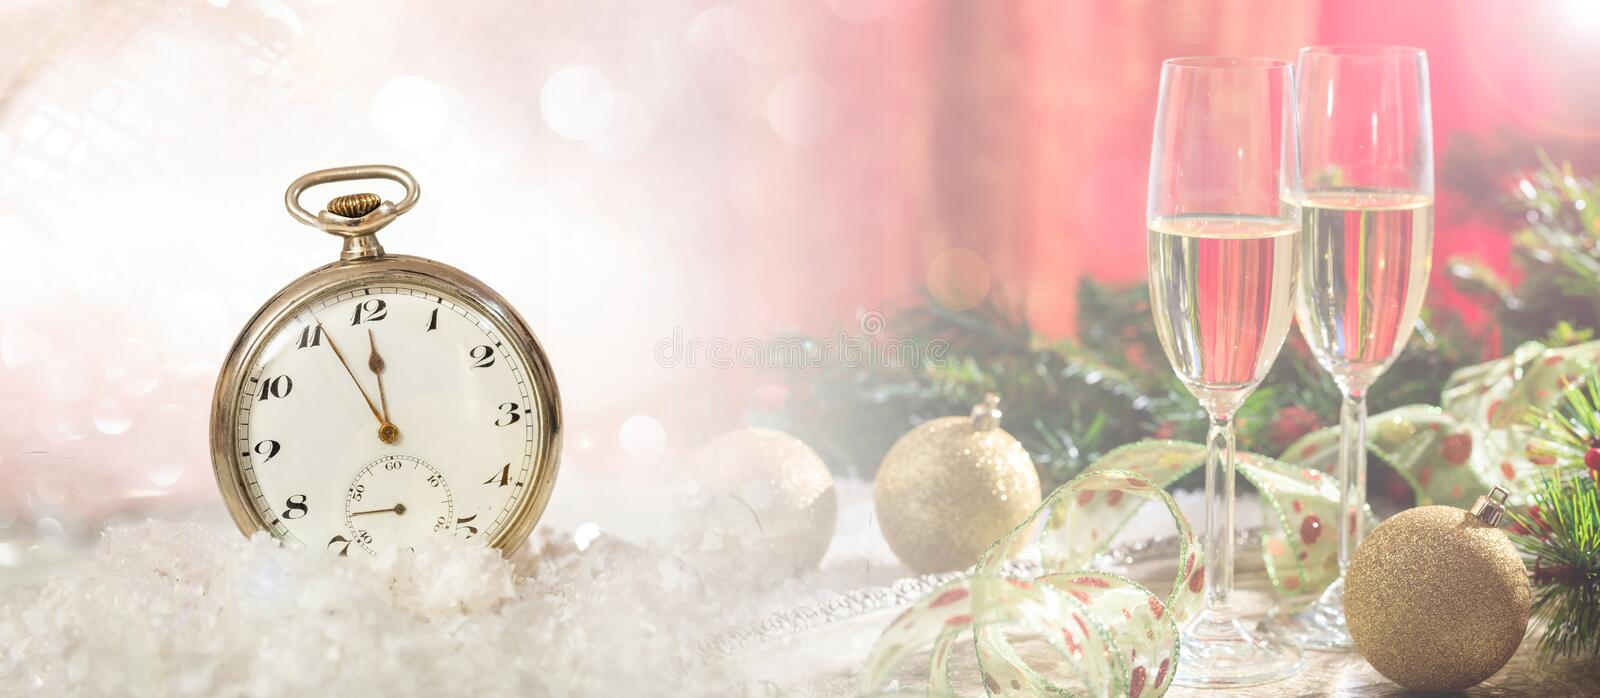 New Years eve party celebration. Minutes to midnight on an old fashioned watch, festive background. Banner stock photography